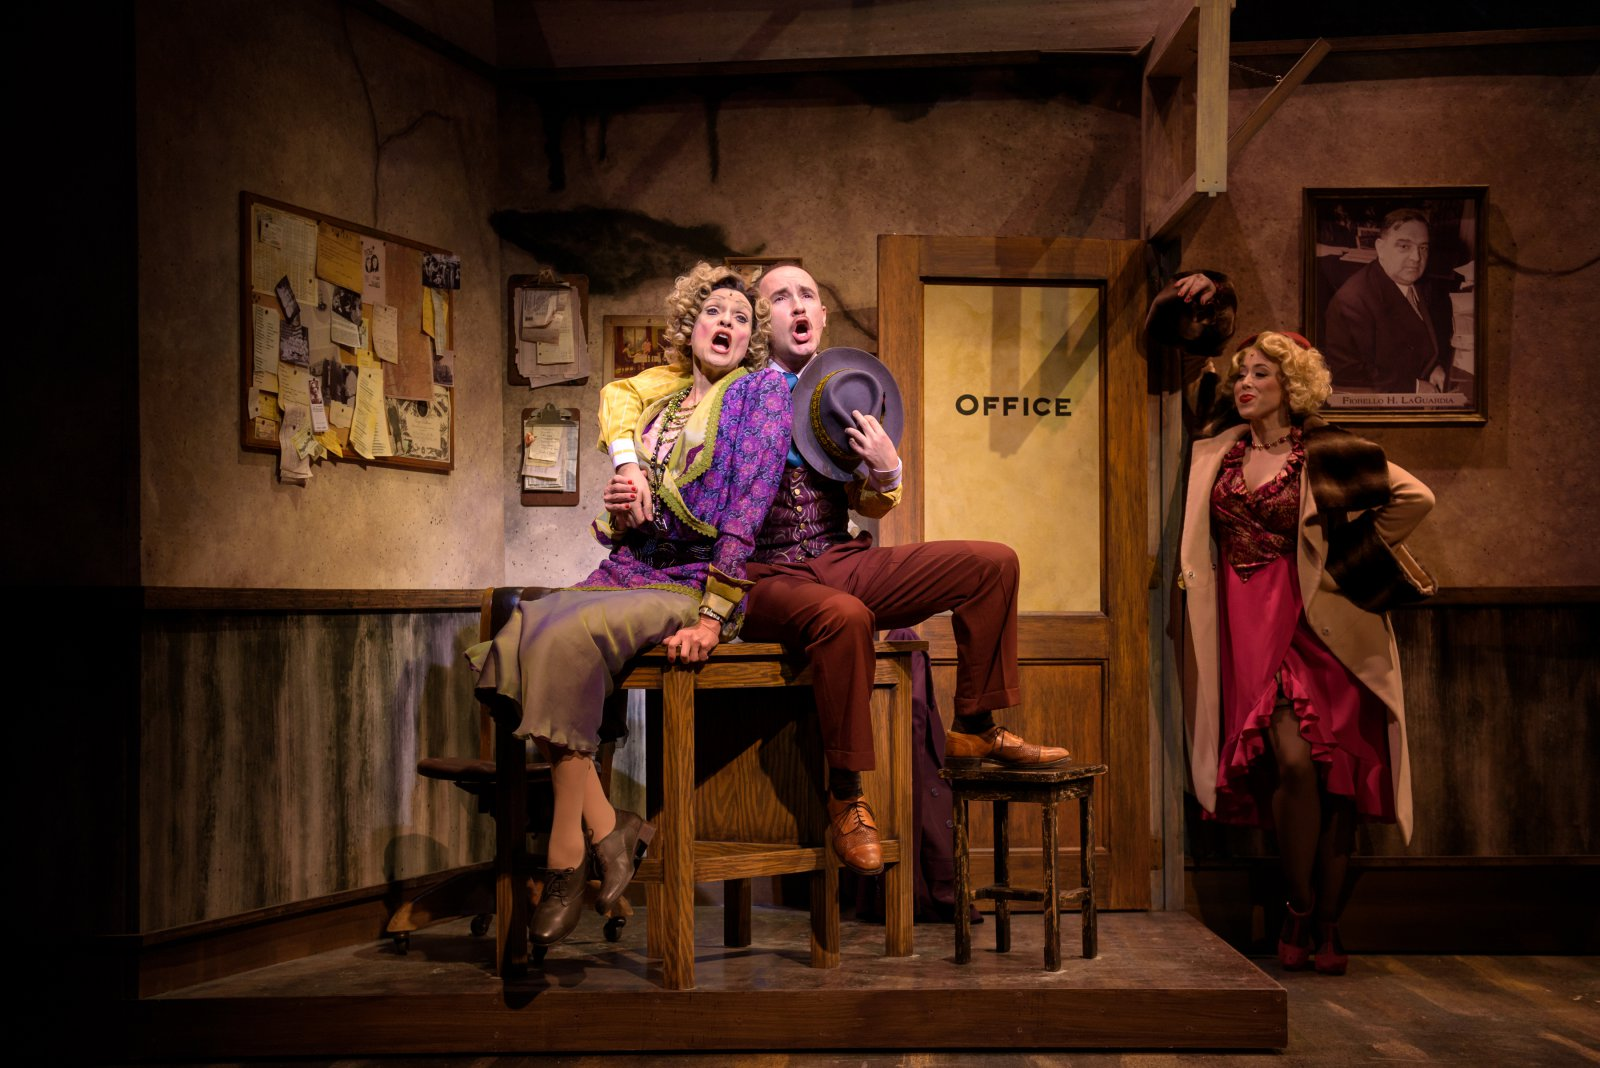 Carrie Hitchcock (Miss Hannigan), Matt Crowle (Rooster) and Samantha Sostarich (Lily St. Regis) in rehearsal for Skylight Music Theatre's production of Annie running November 17 through December 27.